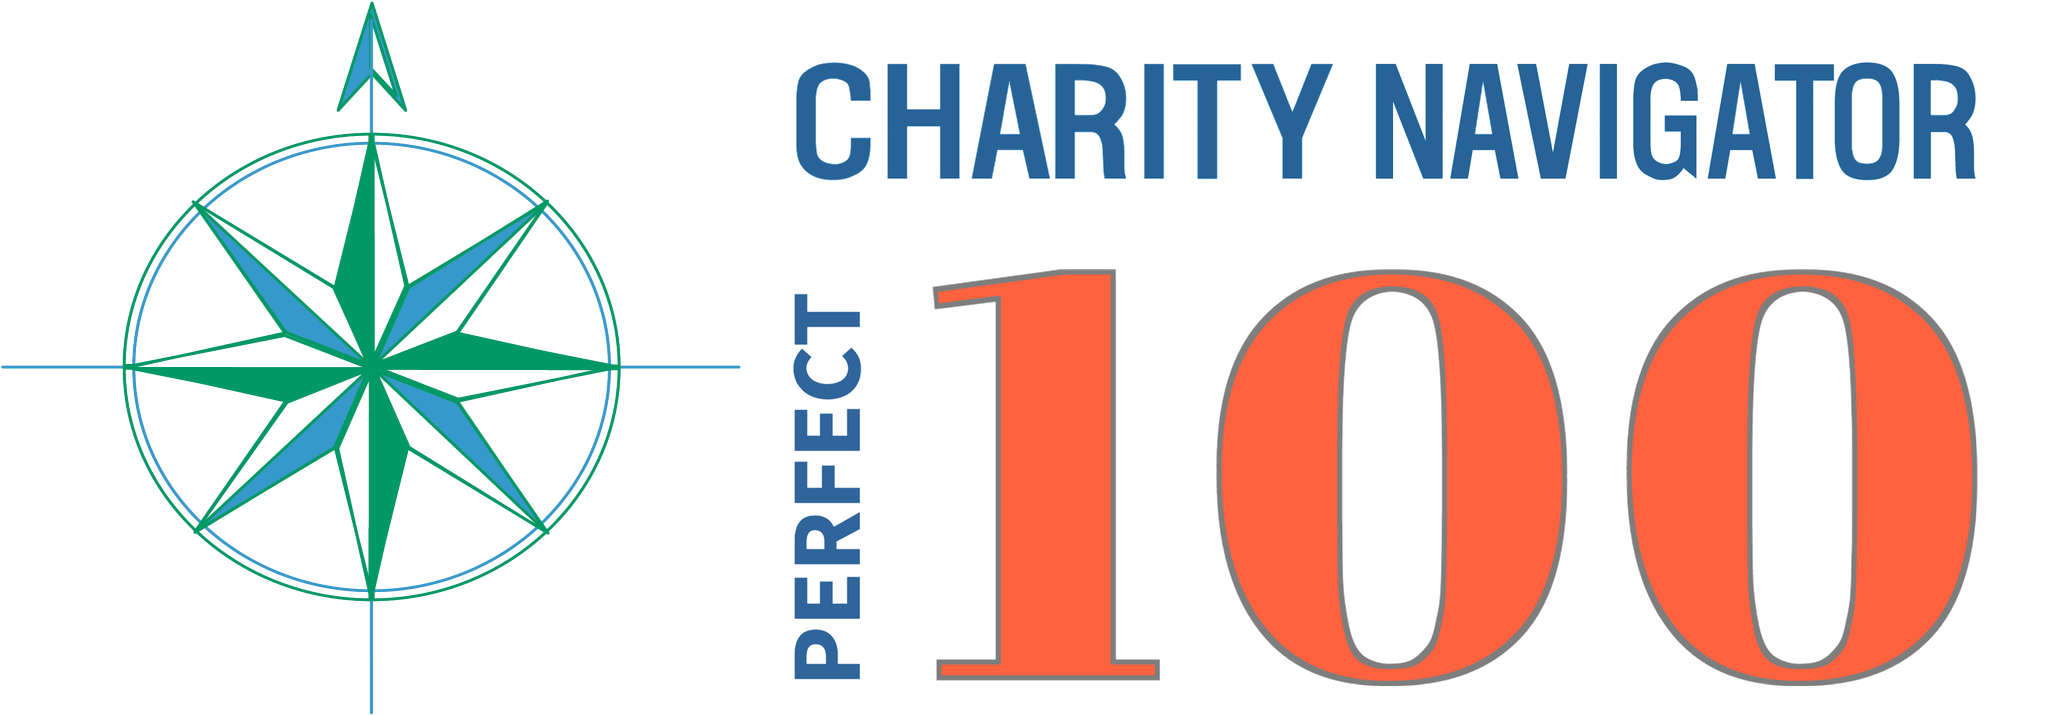 Charity Navigator Perfect 100